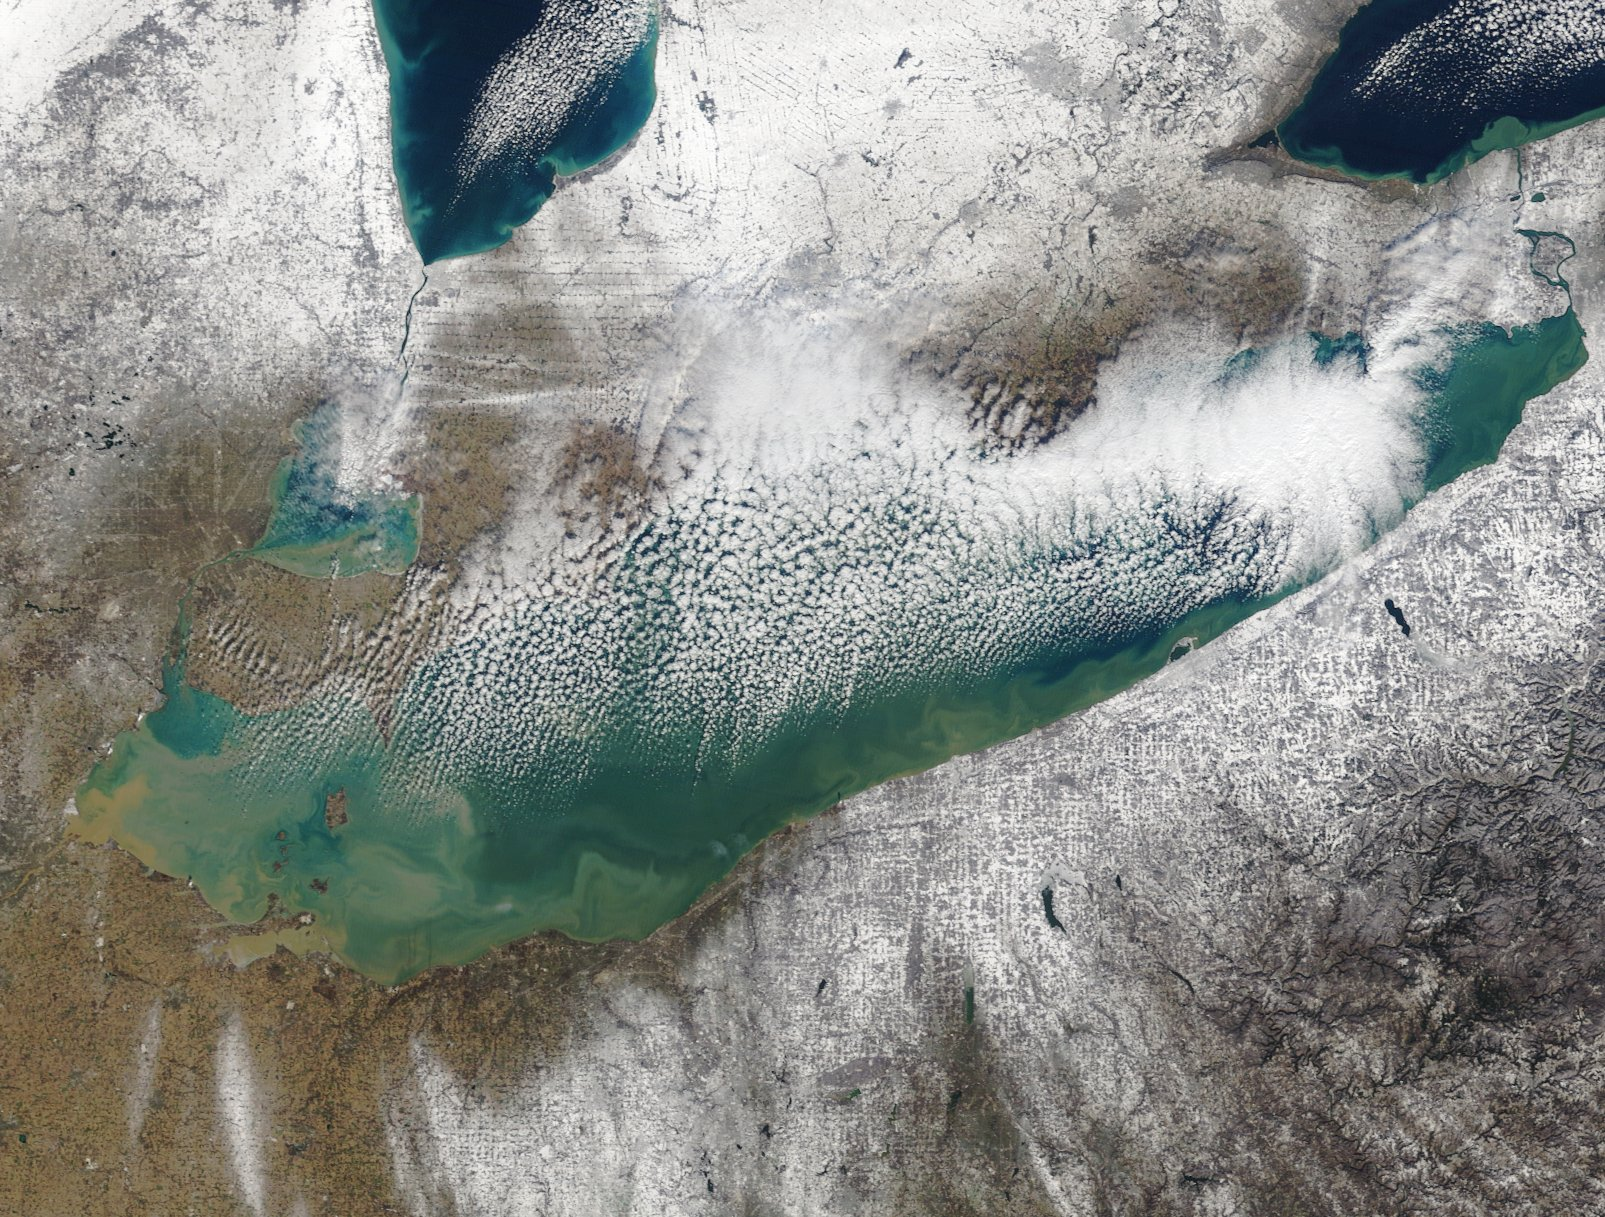 The recent snowfall looks like power sugar around the wide open, blue-green waters of Lake Erie. (NASA)